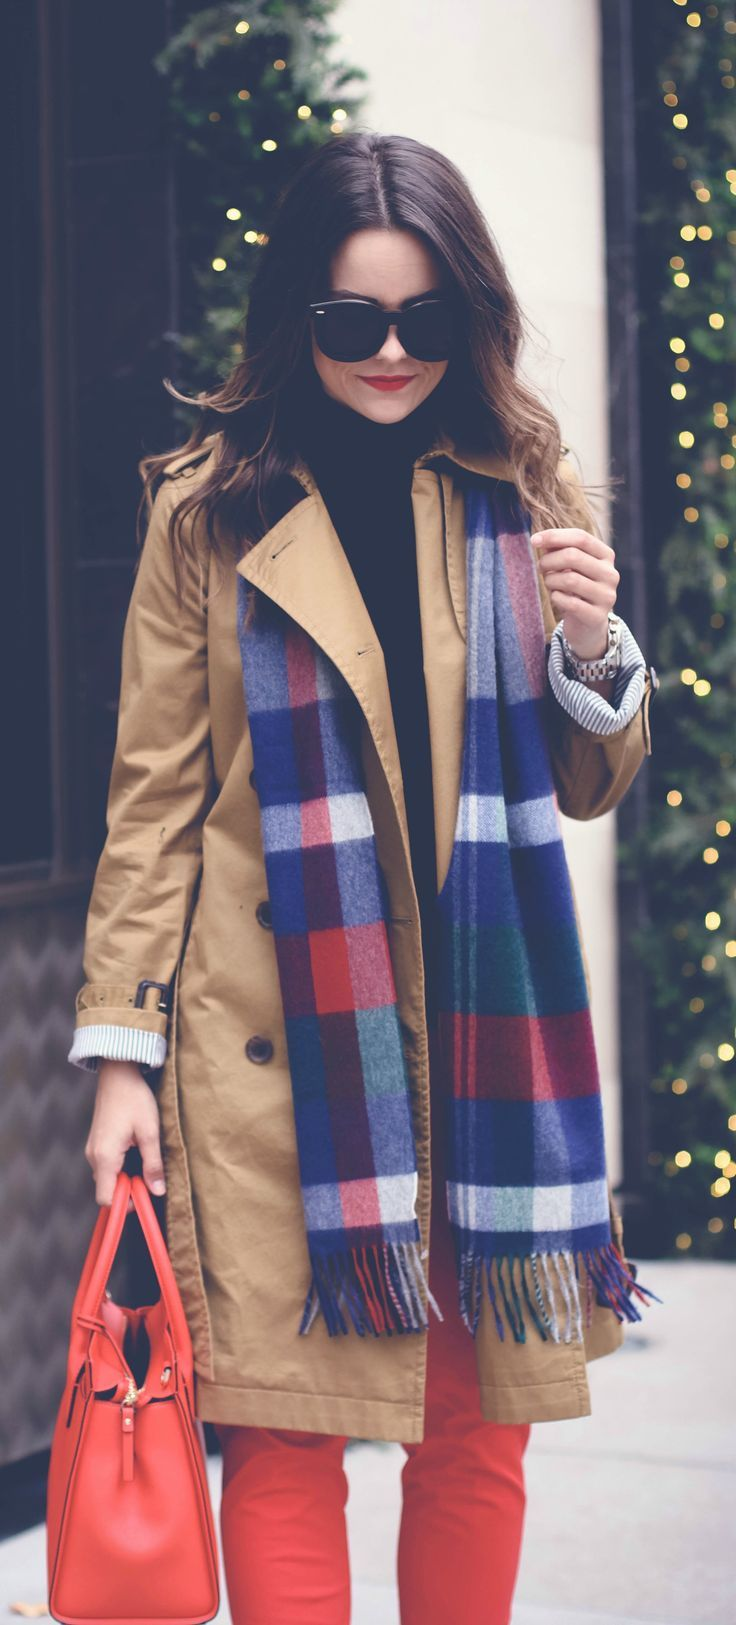 chic winter layers includes a plaid scarf.